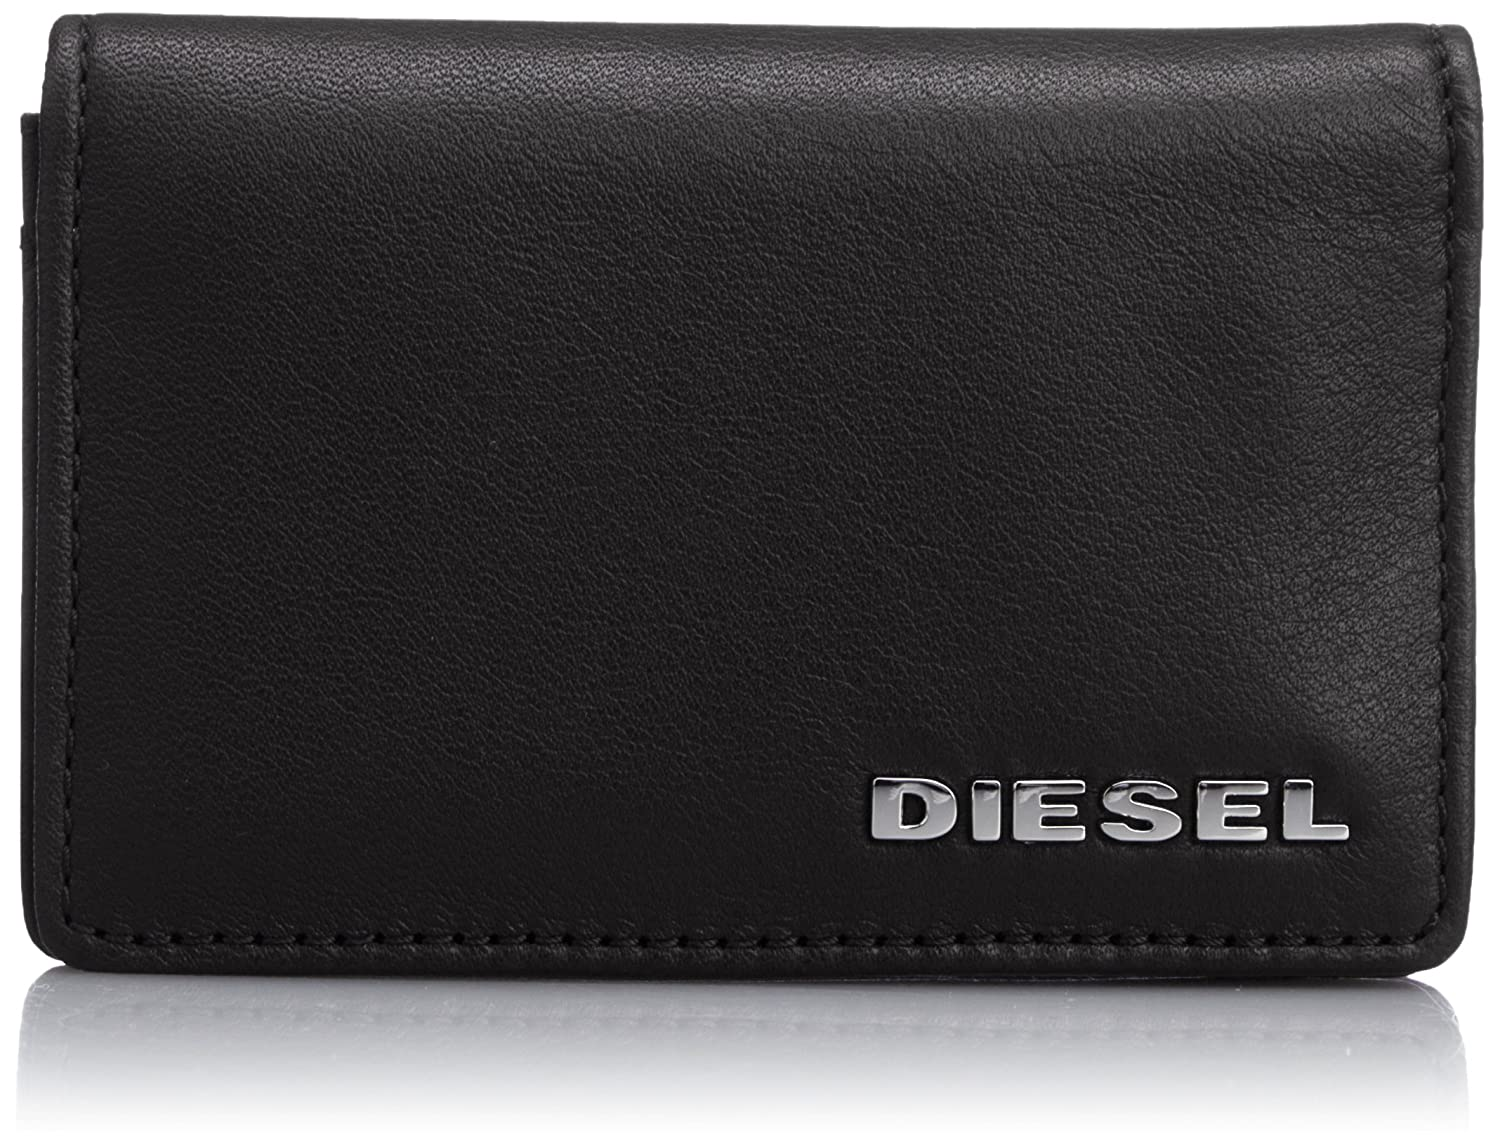 Diesel Hombre Dukez Card Holder Wallet, Negro, One Size ...